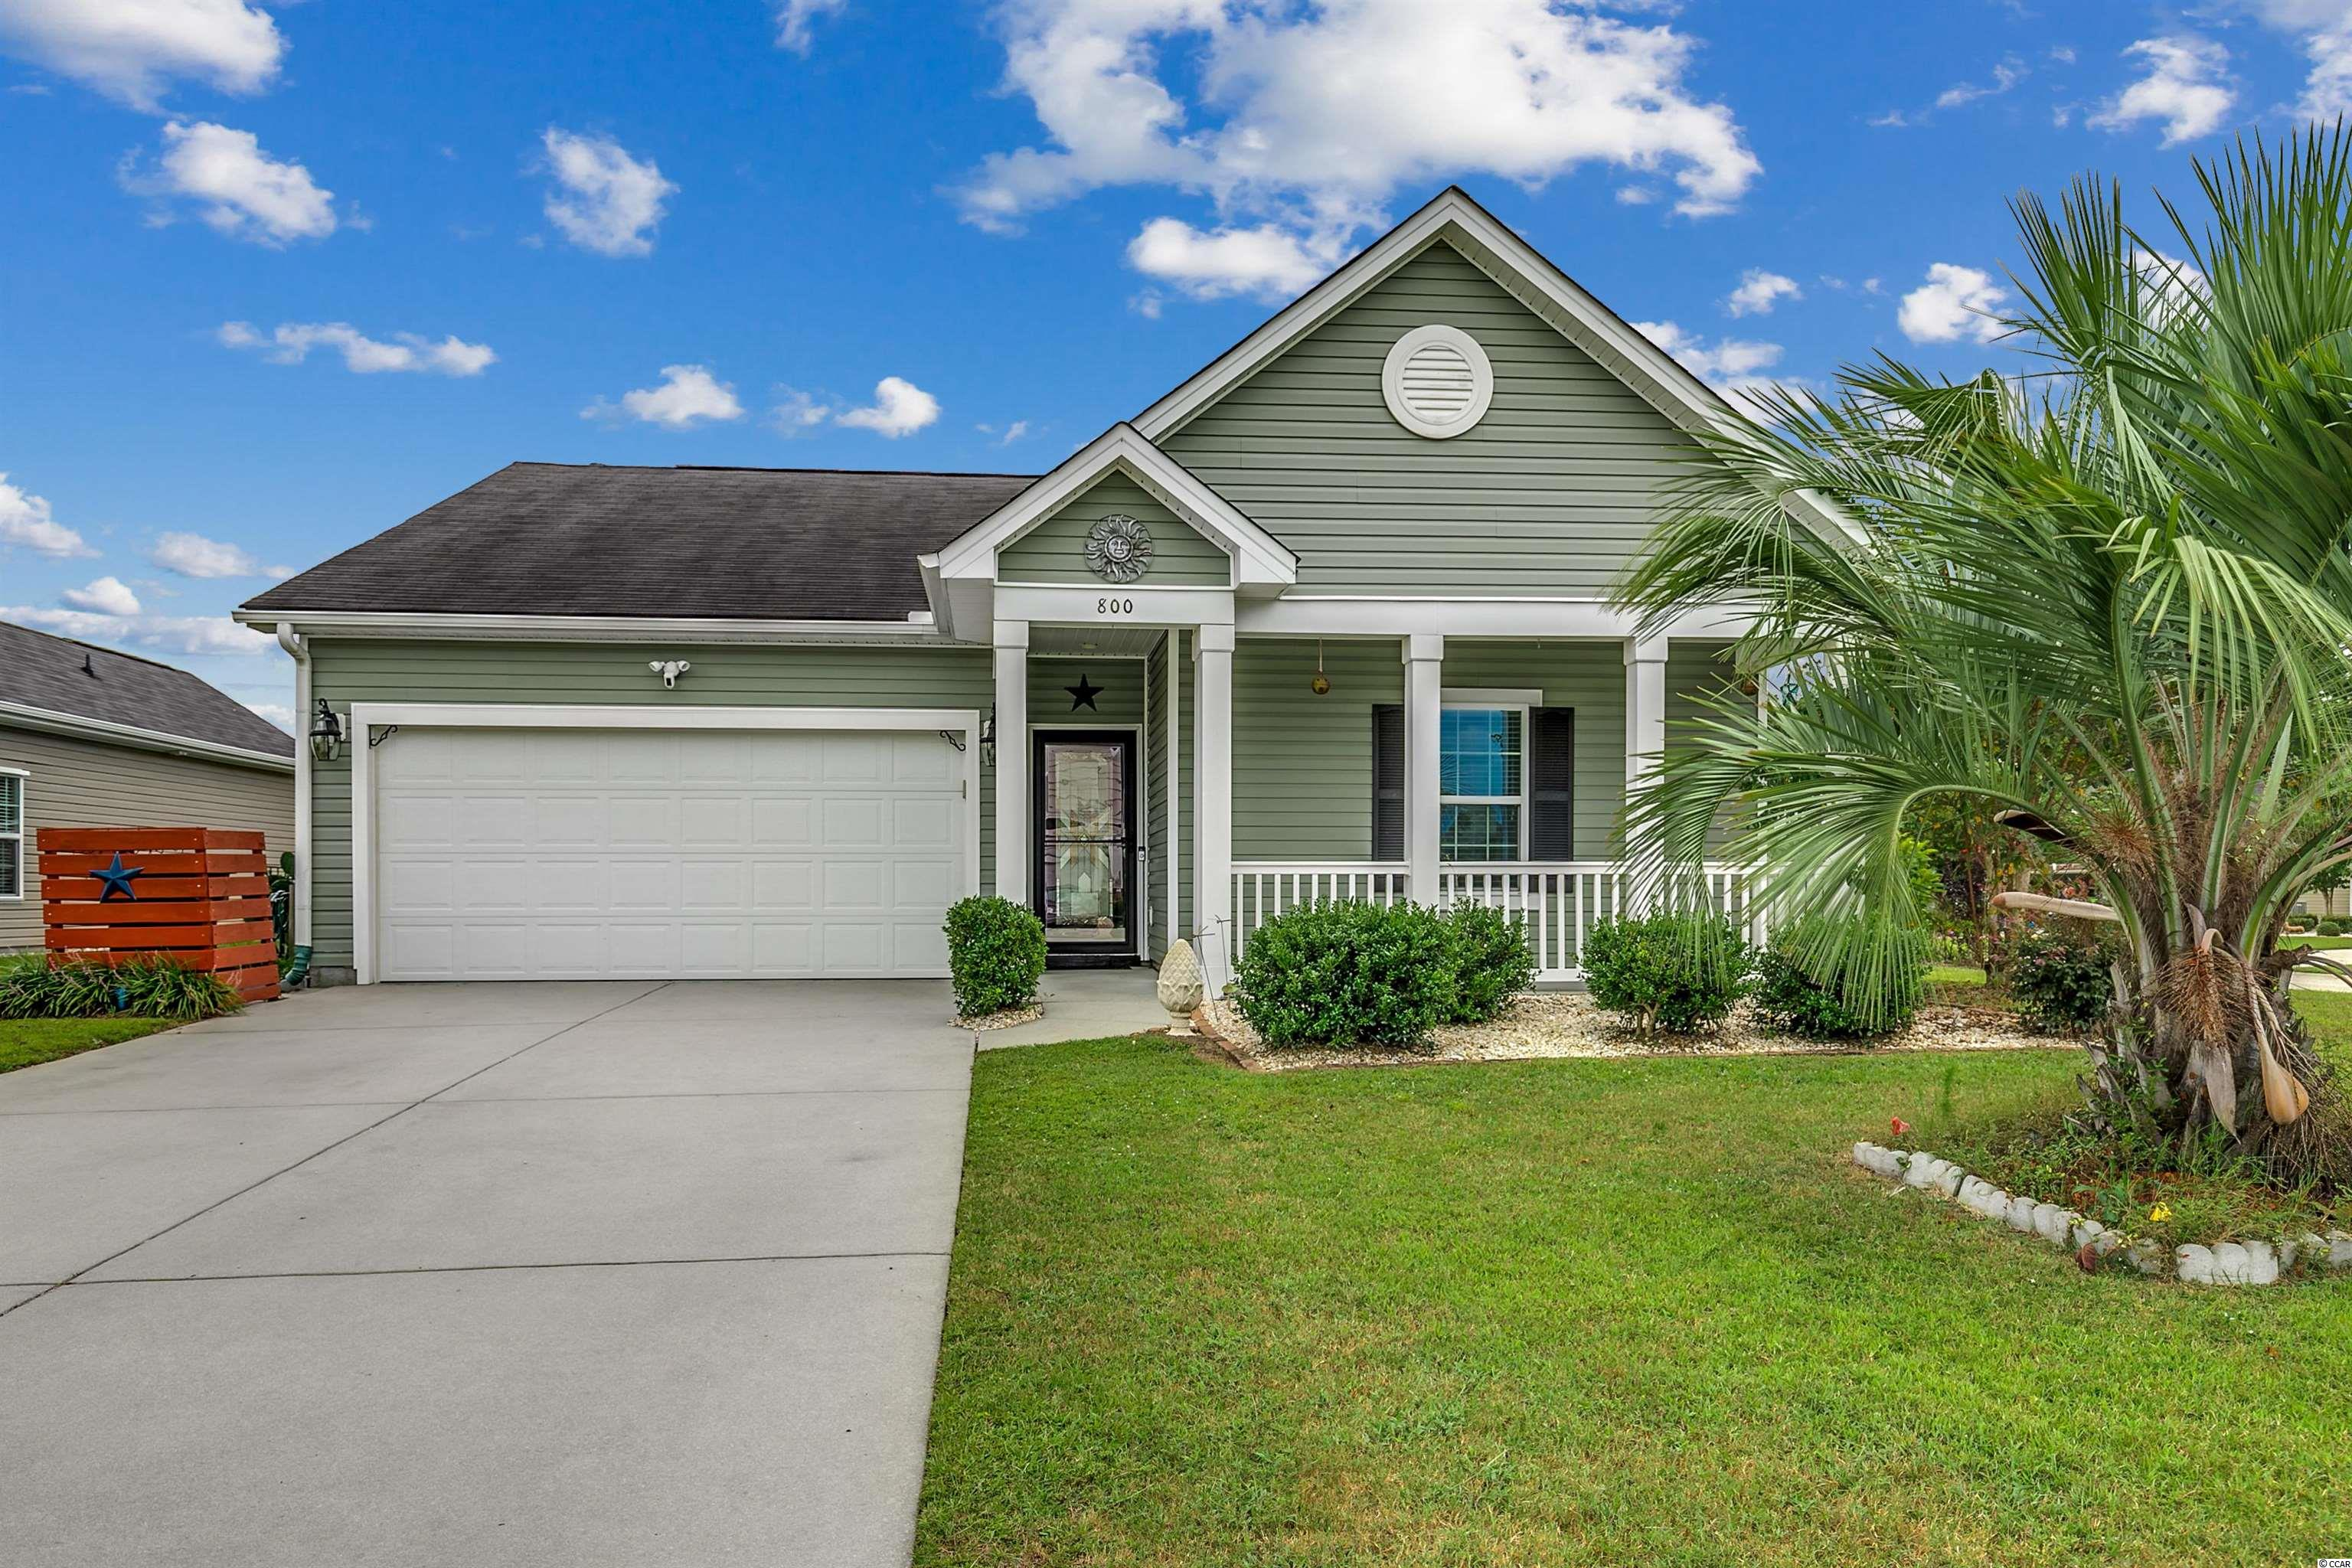 Great corner lot in the highly sought Ridge Pointe subdivision.  Conveniently located near Conway Medical Center and Coastal Carolina University, this charming home will not last long.  With a spacious front porch and large lot, there is great outdoor space to enjoy.  Schedule your showing today!